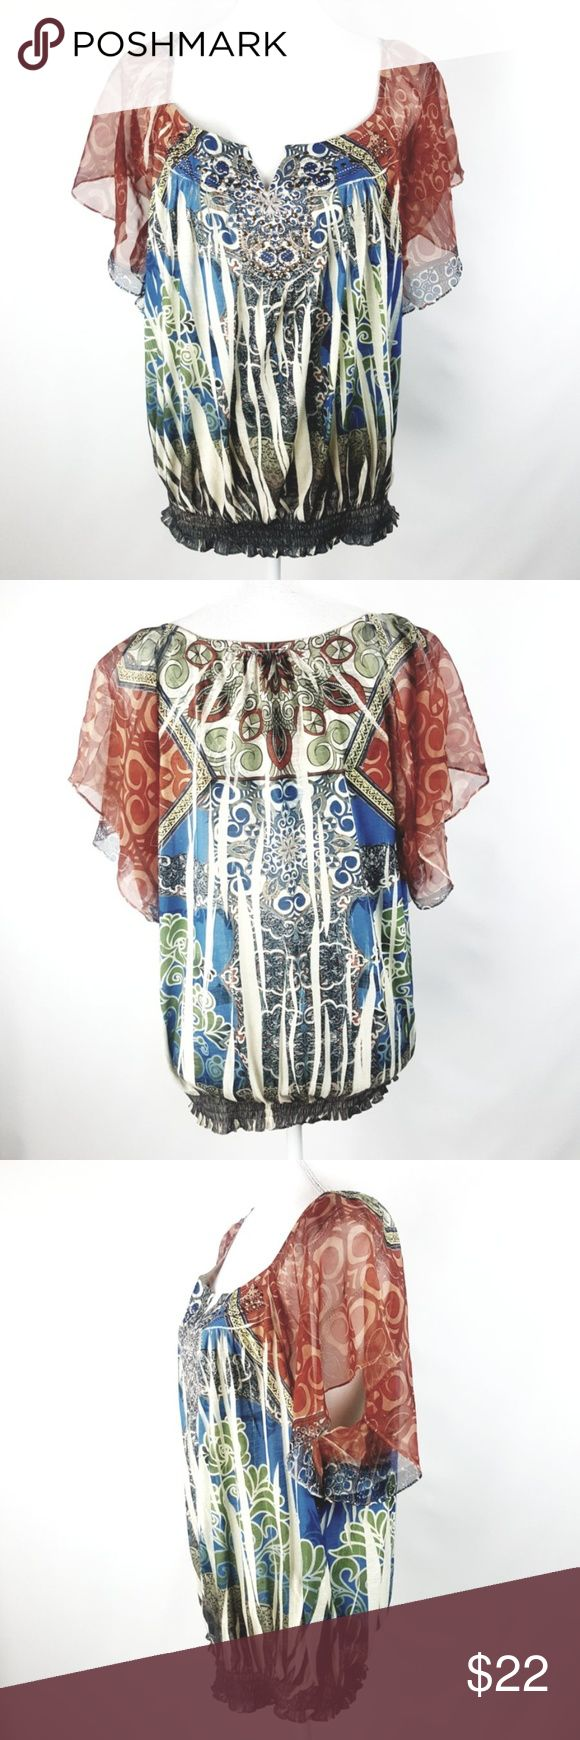 """Cato Sublimation Popover Flutter Sleeve Top 18 20W Size 18W 20W Great Condition! No rips, stains, etc.  Multi-Colored Sheer Flutter Sleeves Popover Lightweight, Soft, Stretch Stretch Elastic Bottom   Career or Casual  Measurements taken un-stretched & laying flat: Armpit to Armpit: 24"""" Length: 26.5""""  Check out my other listings! Cato Tops Blouses"""